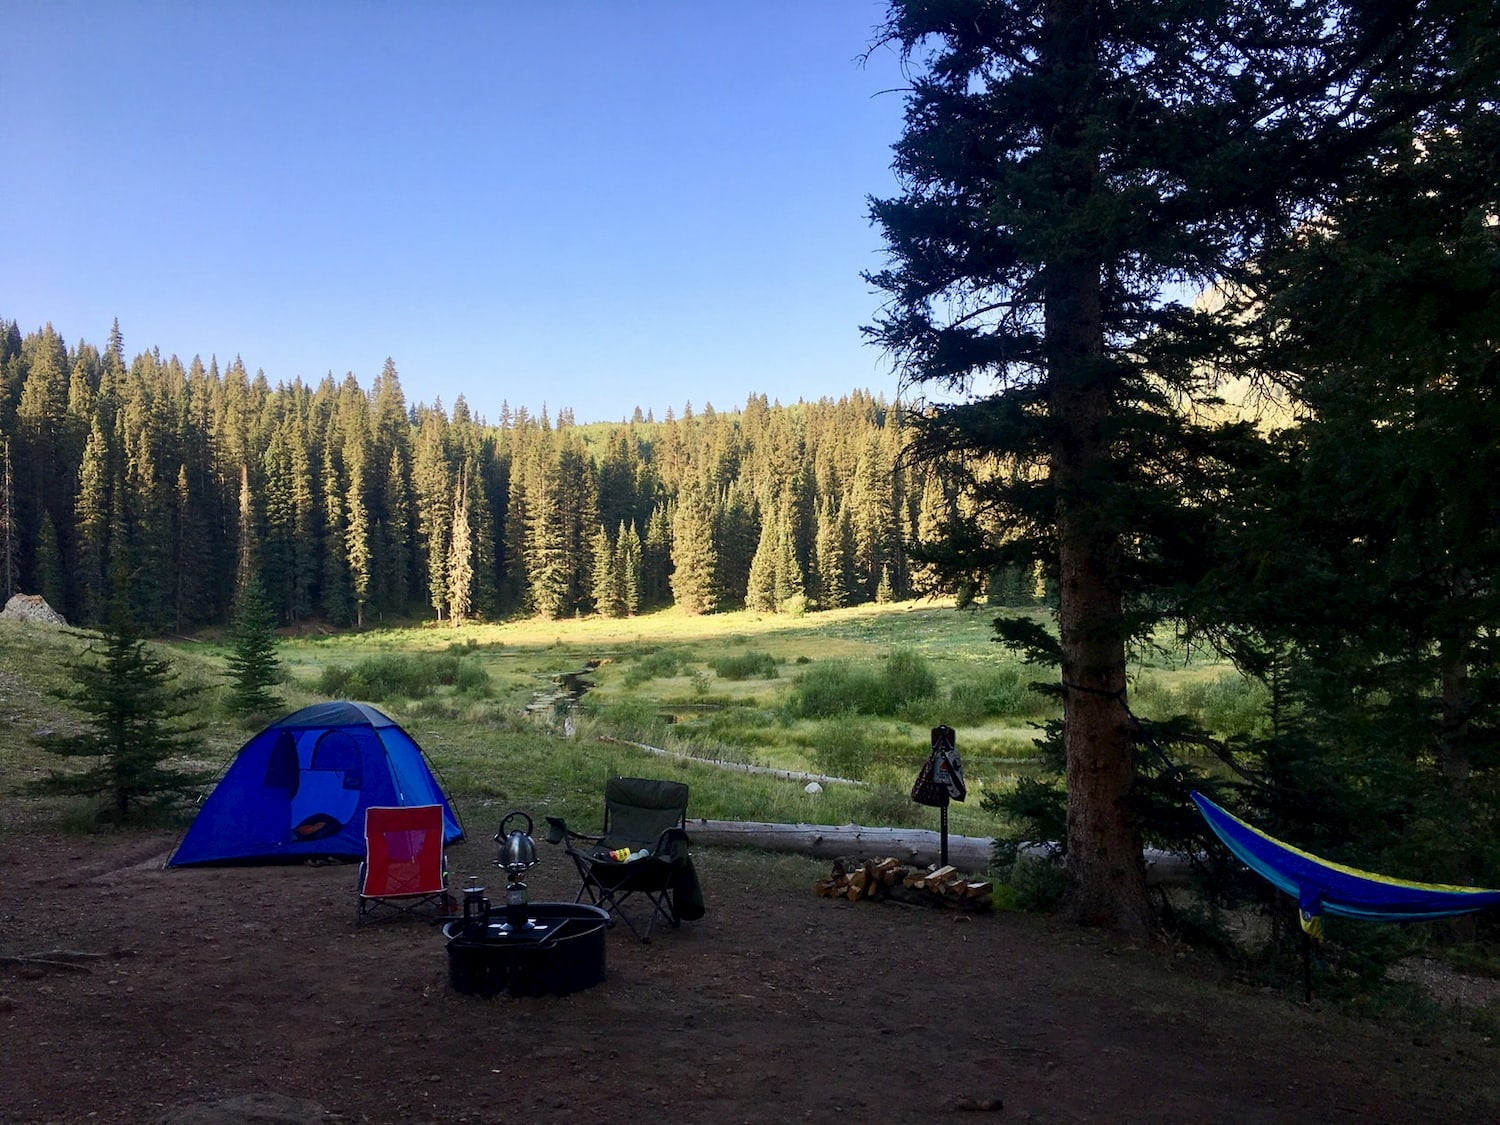 Dawn at wooded campsite with tent and hammock.